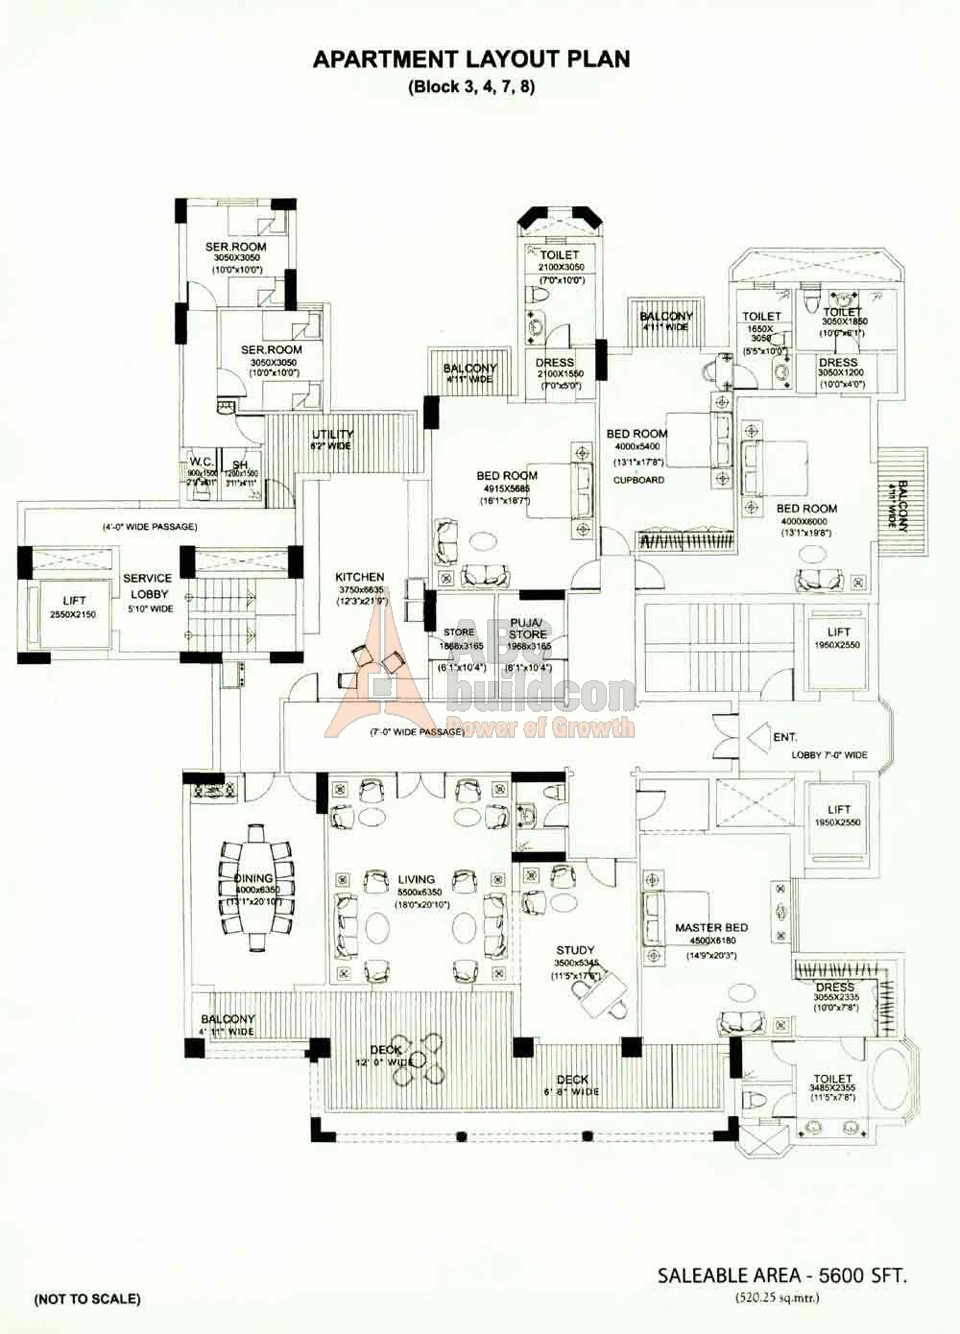 Led Strip Lights Wiring Diagram Together With Patent Us7046160 Led